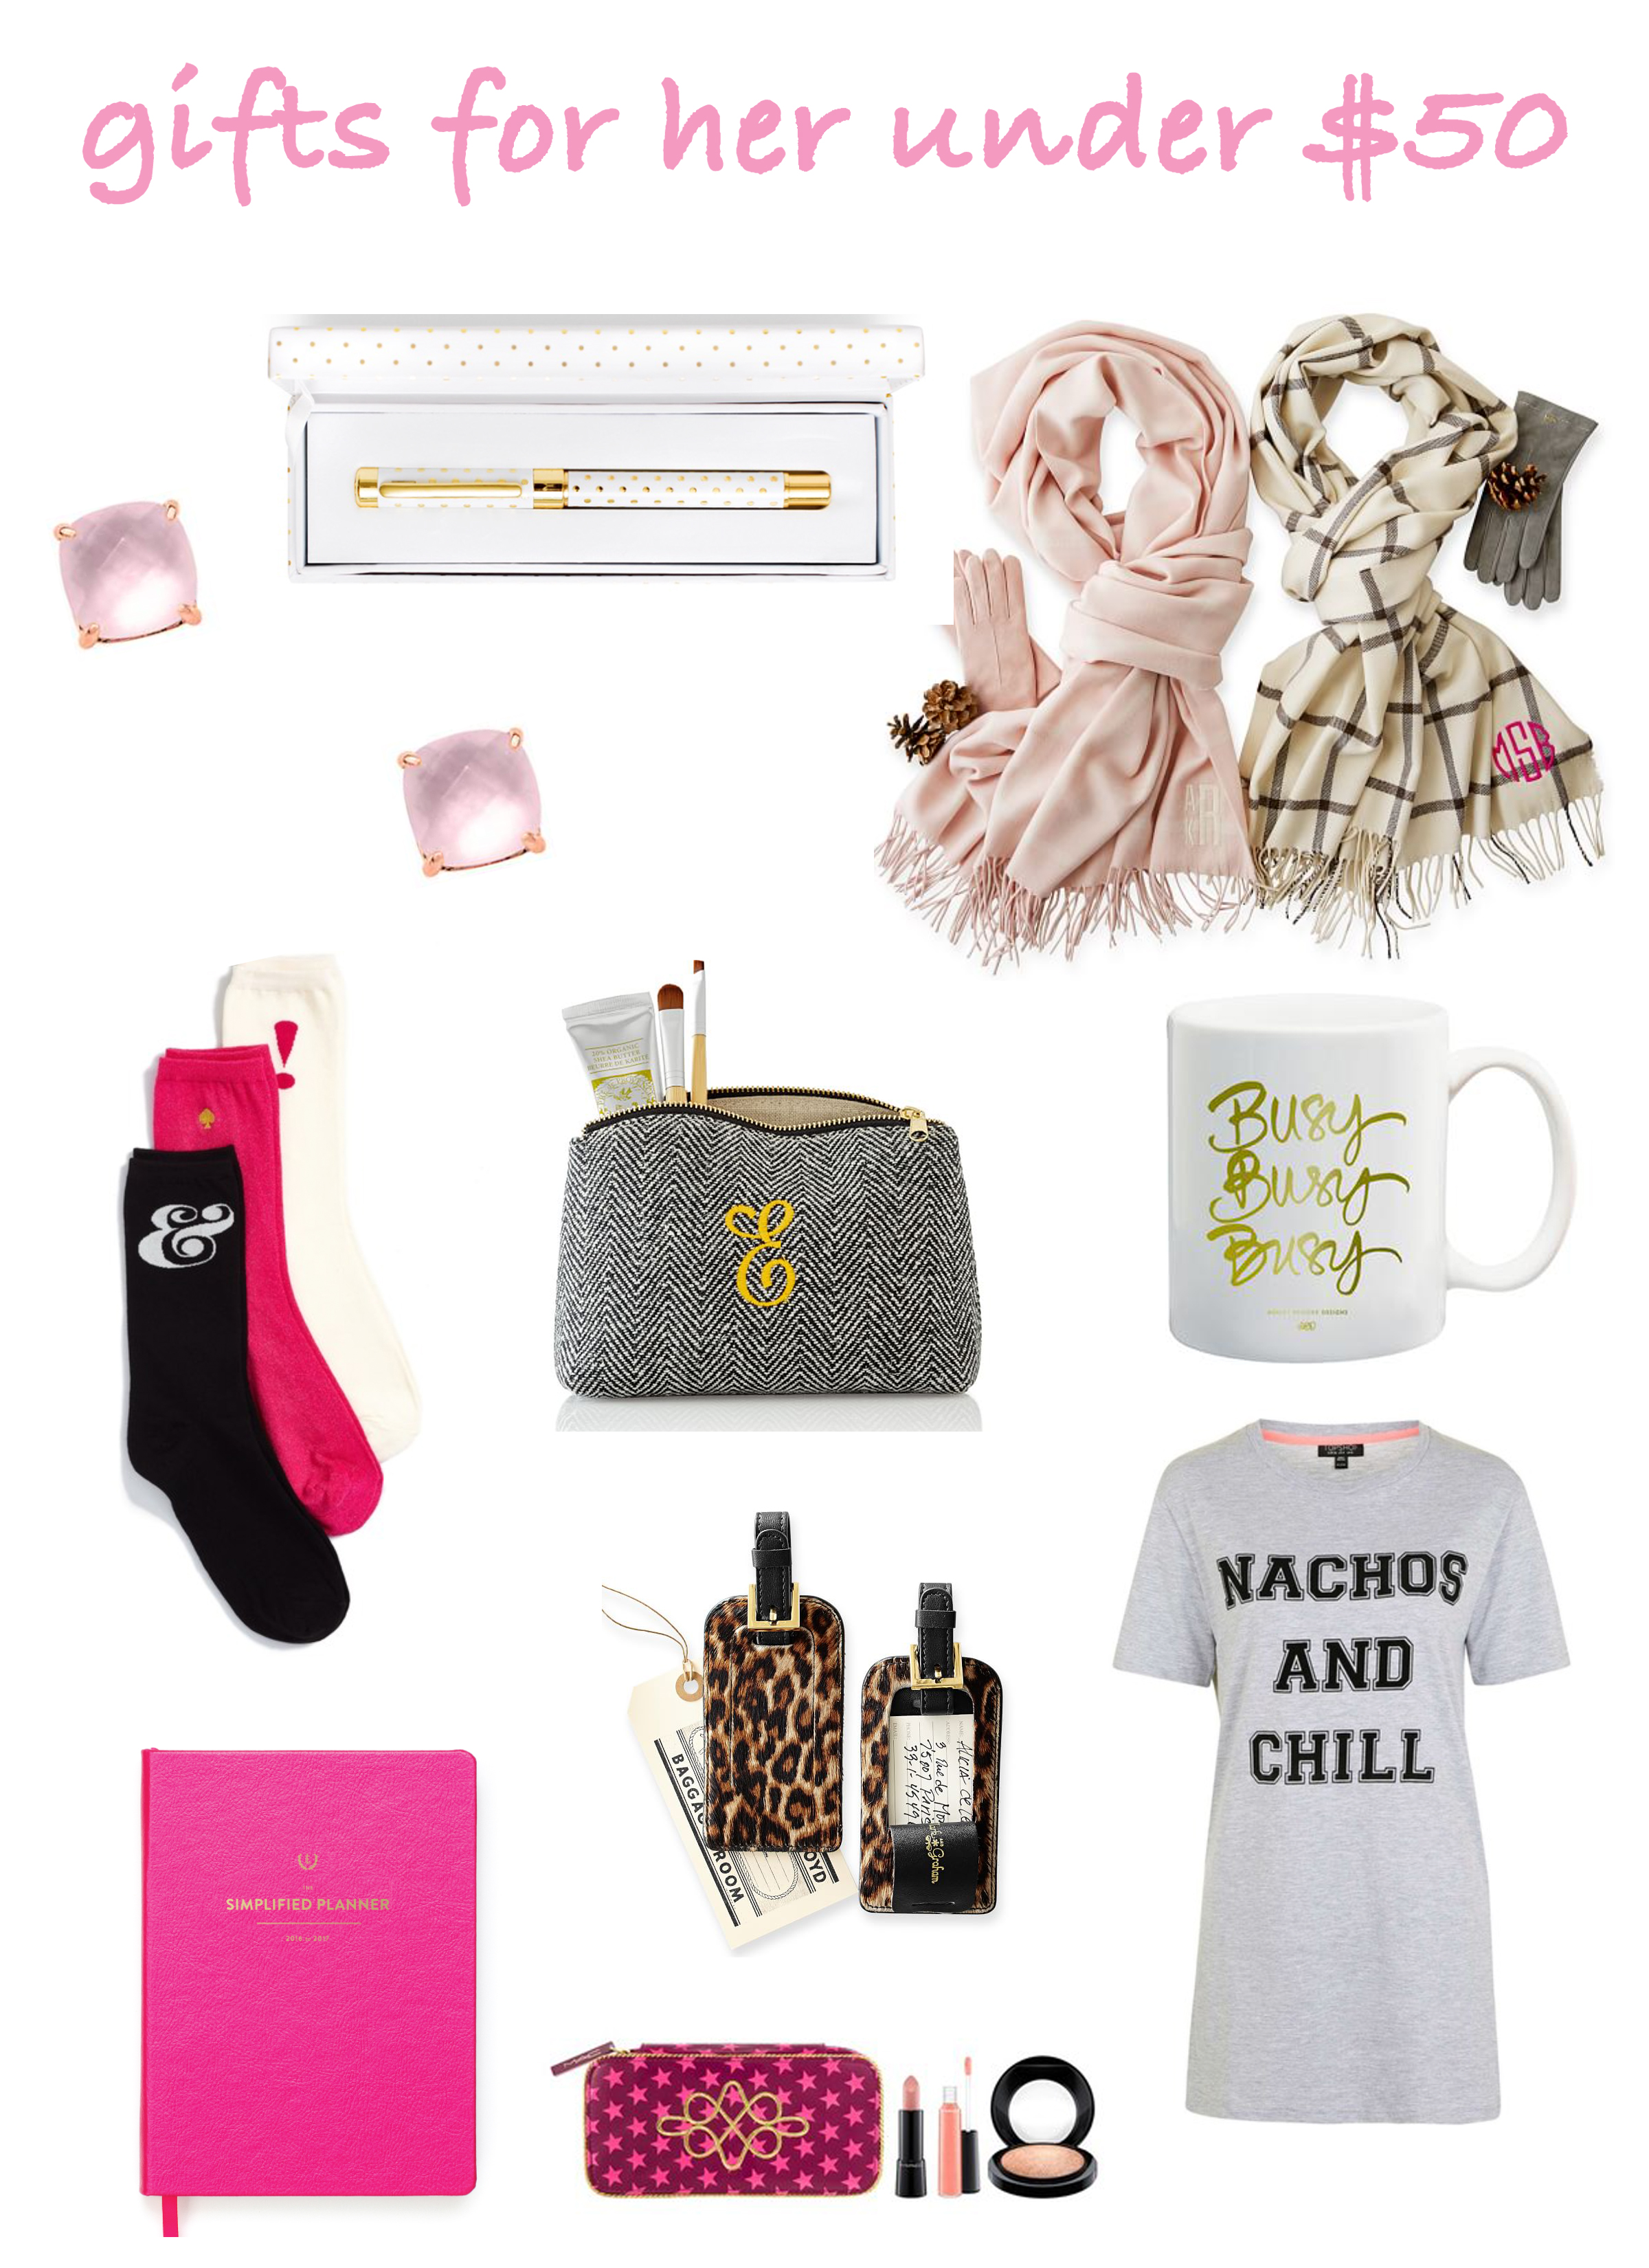 Gift Guide for Her - #GiftsUnder50 #Holiday #GiftsforHer #StockingStuffer #GiftsforGirls #GirlGifts